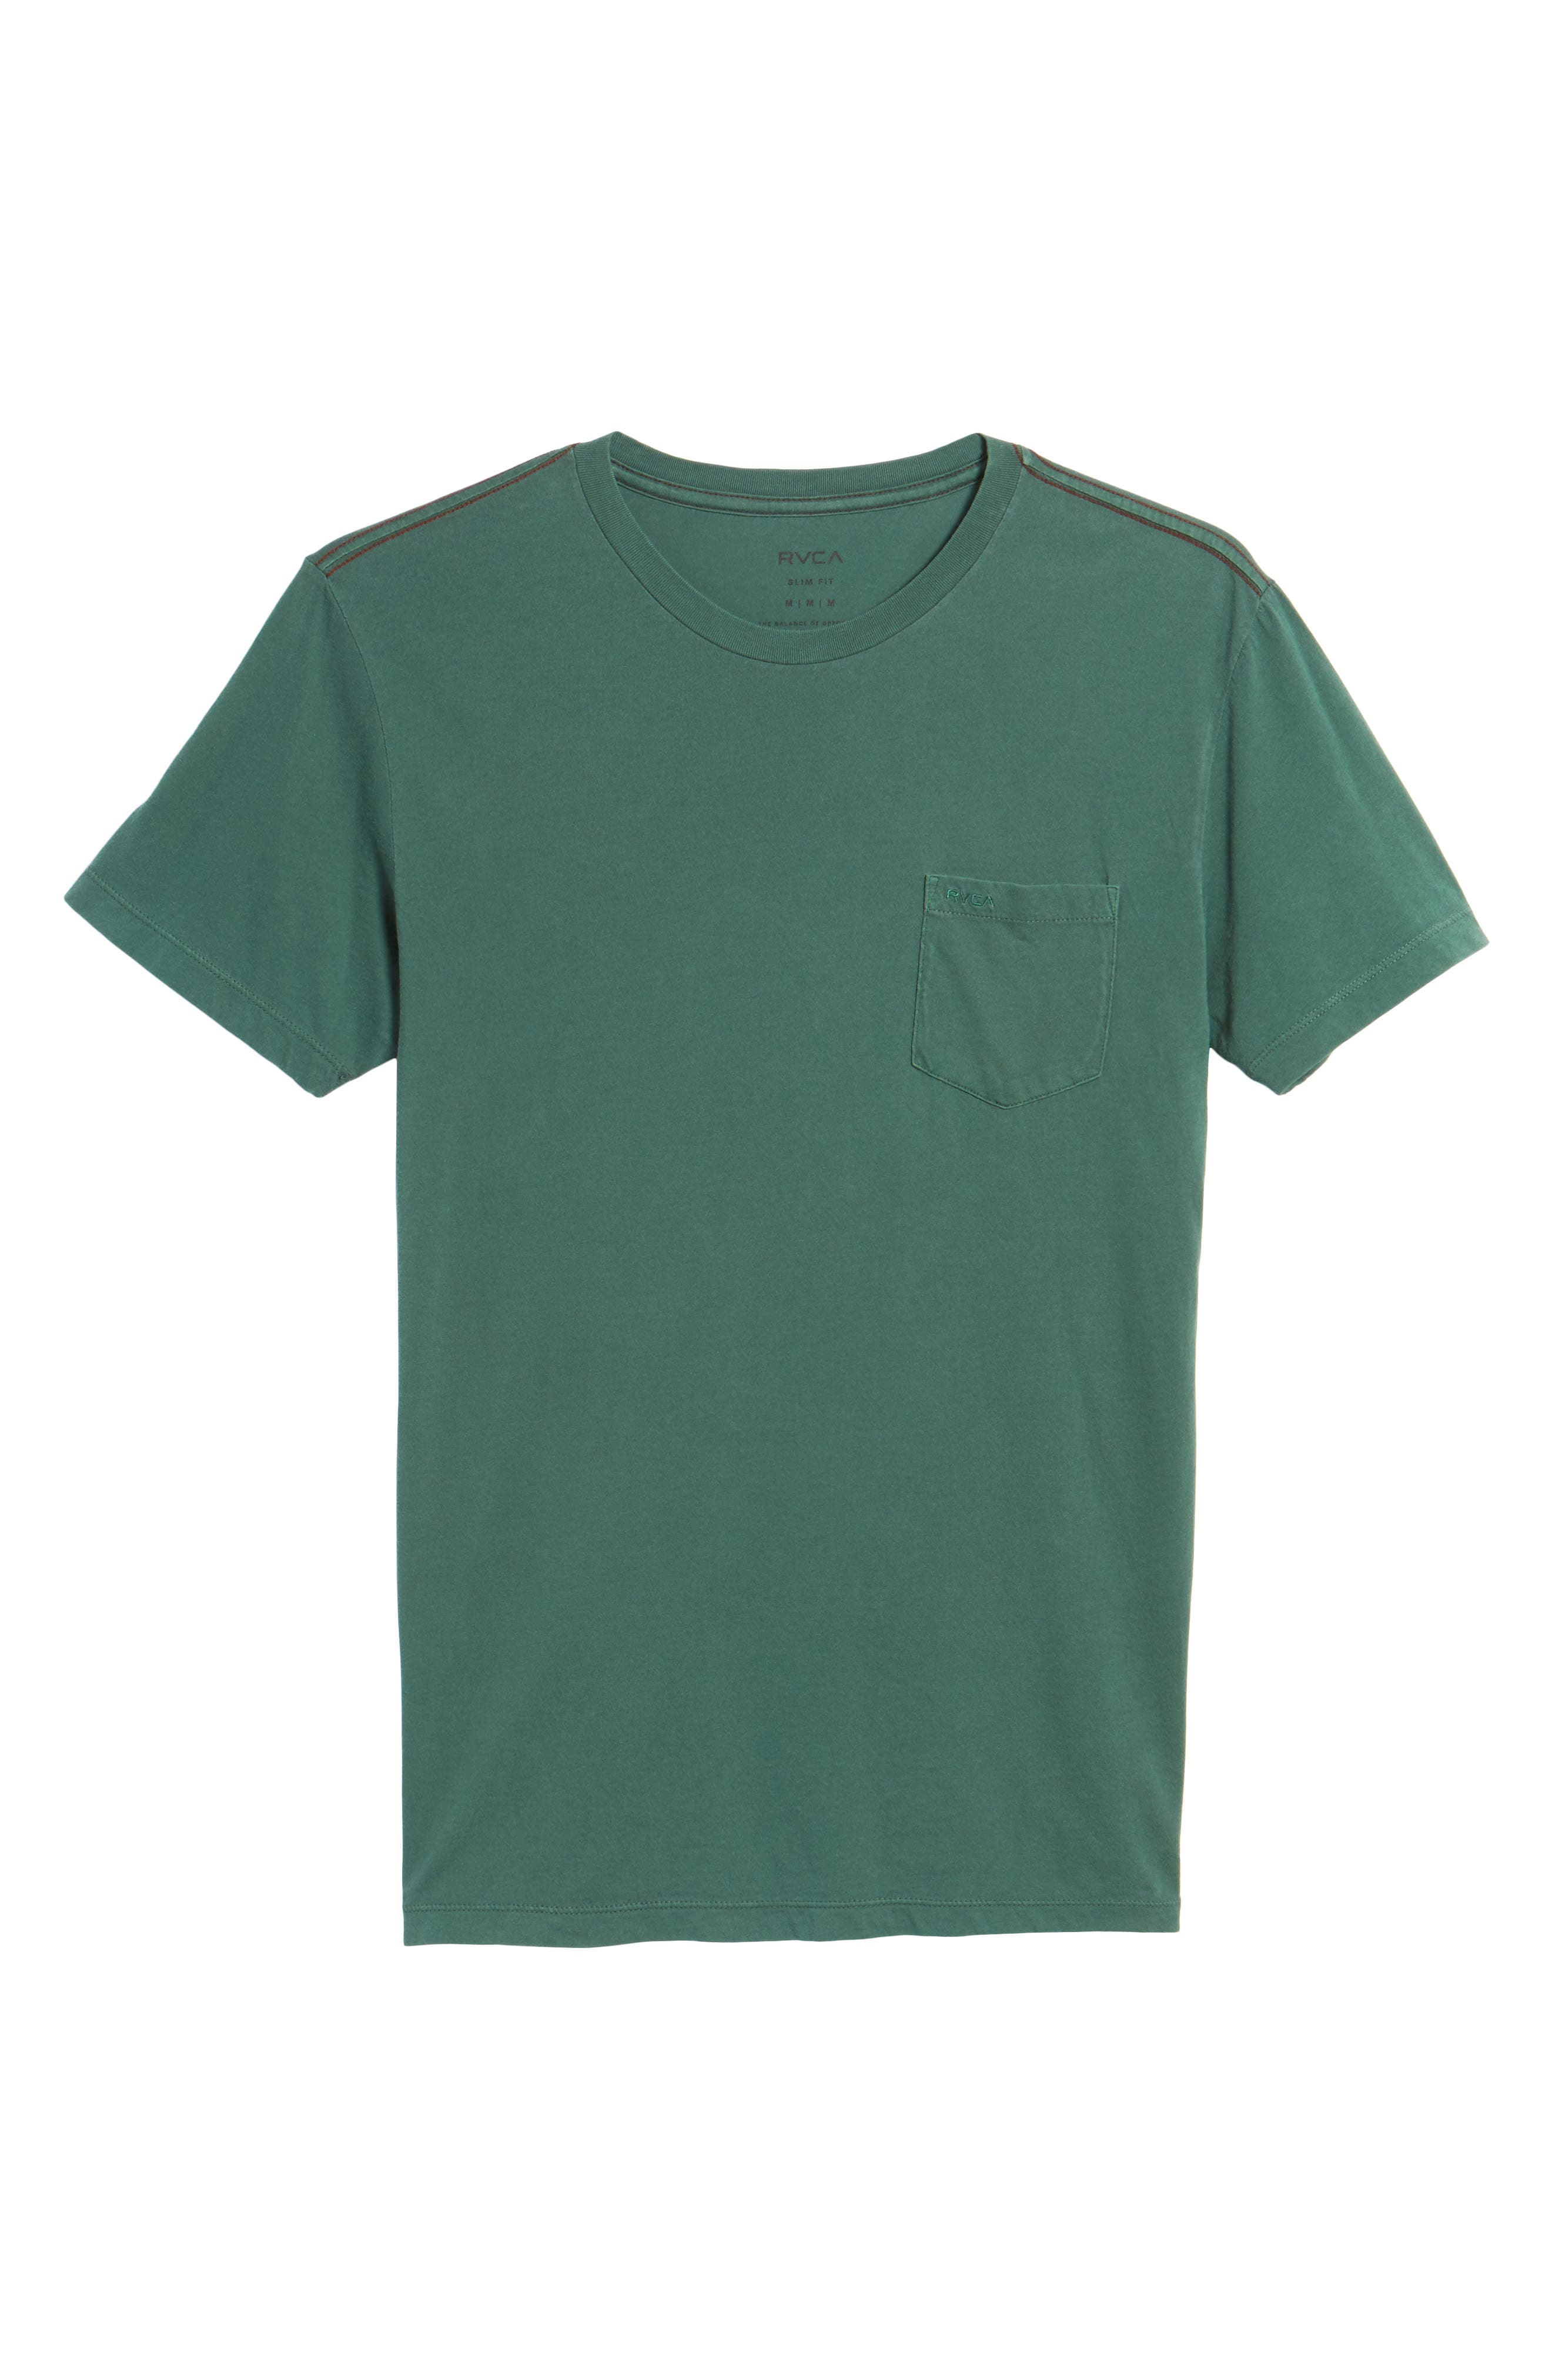 'PTC 2' T-Shirt,                             Alternate thumbnail 7, color,                             Sycamore